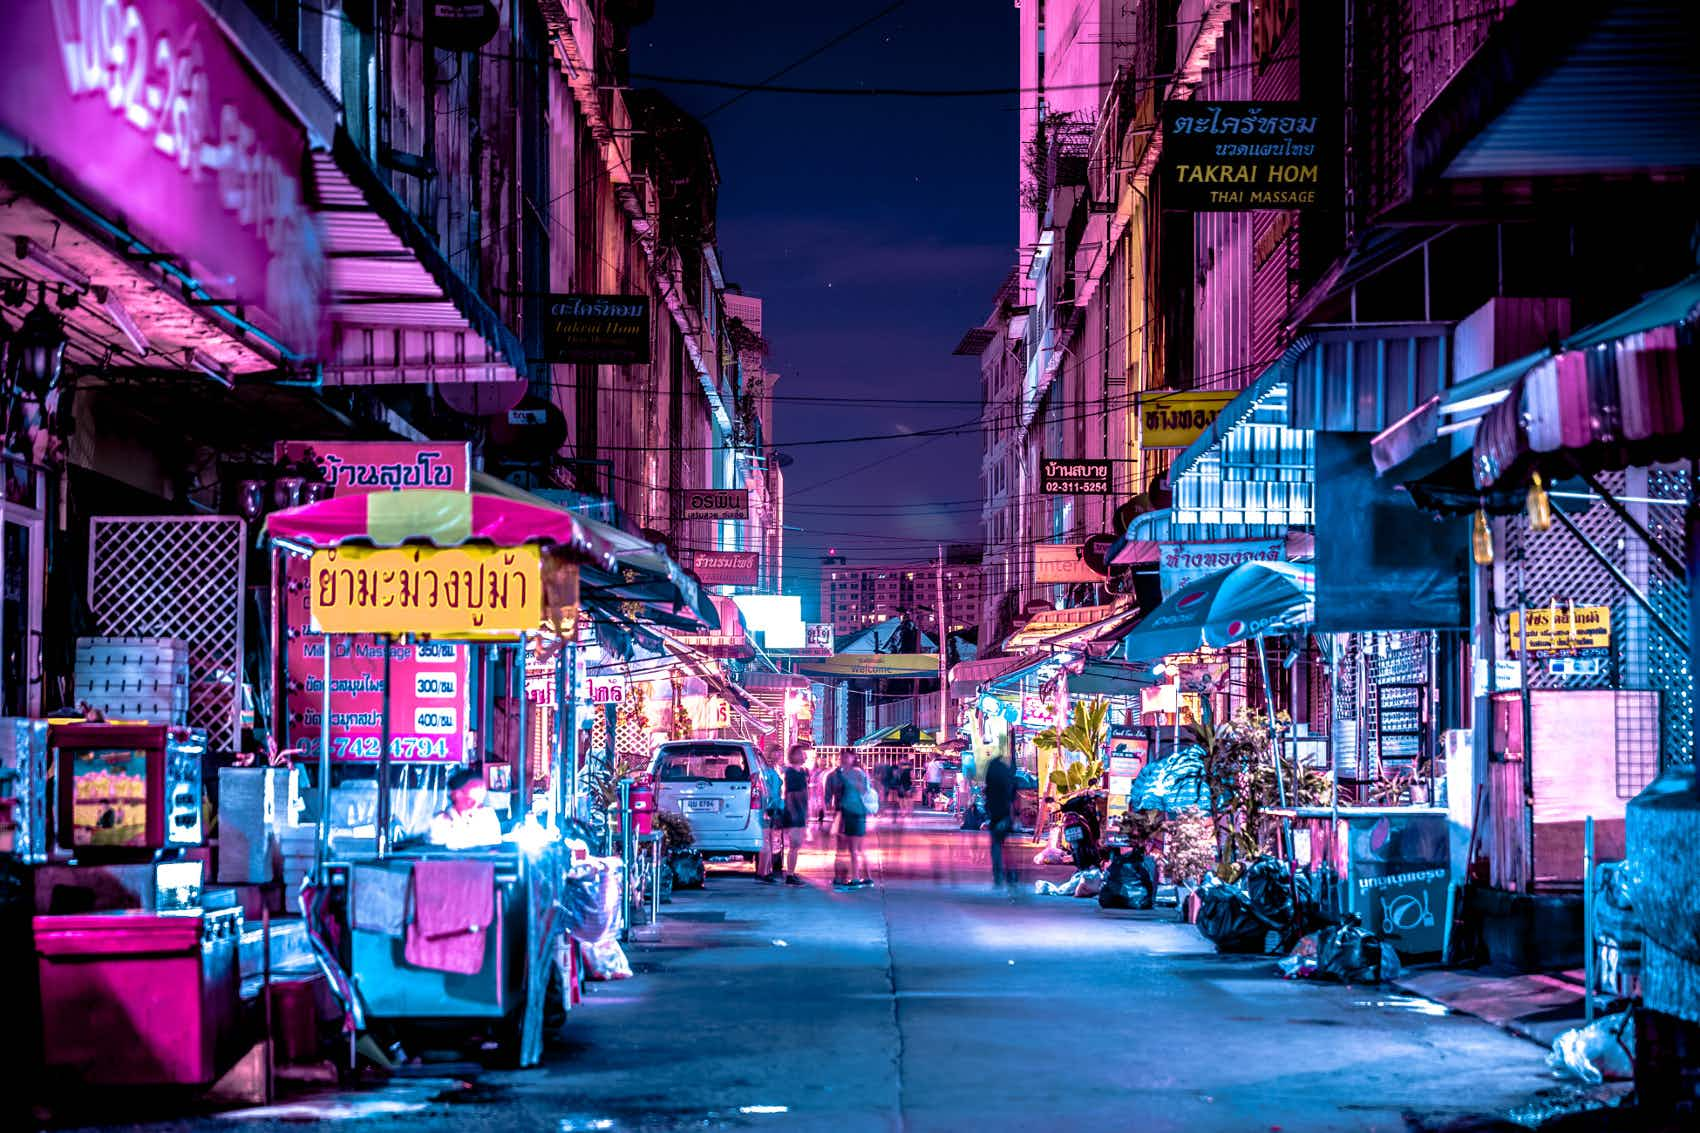 This photo series captures neon-tinged Bangkok like you've never seen it before